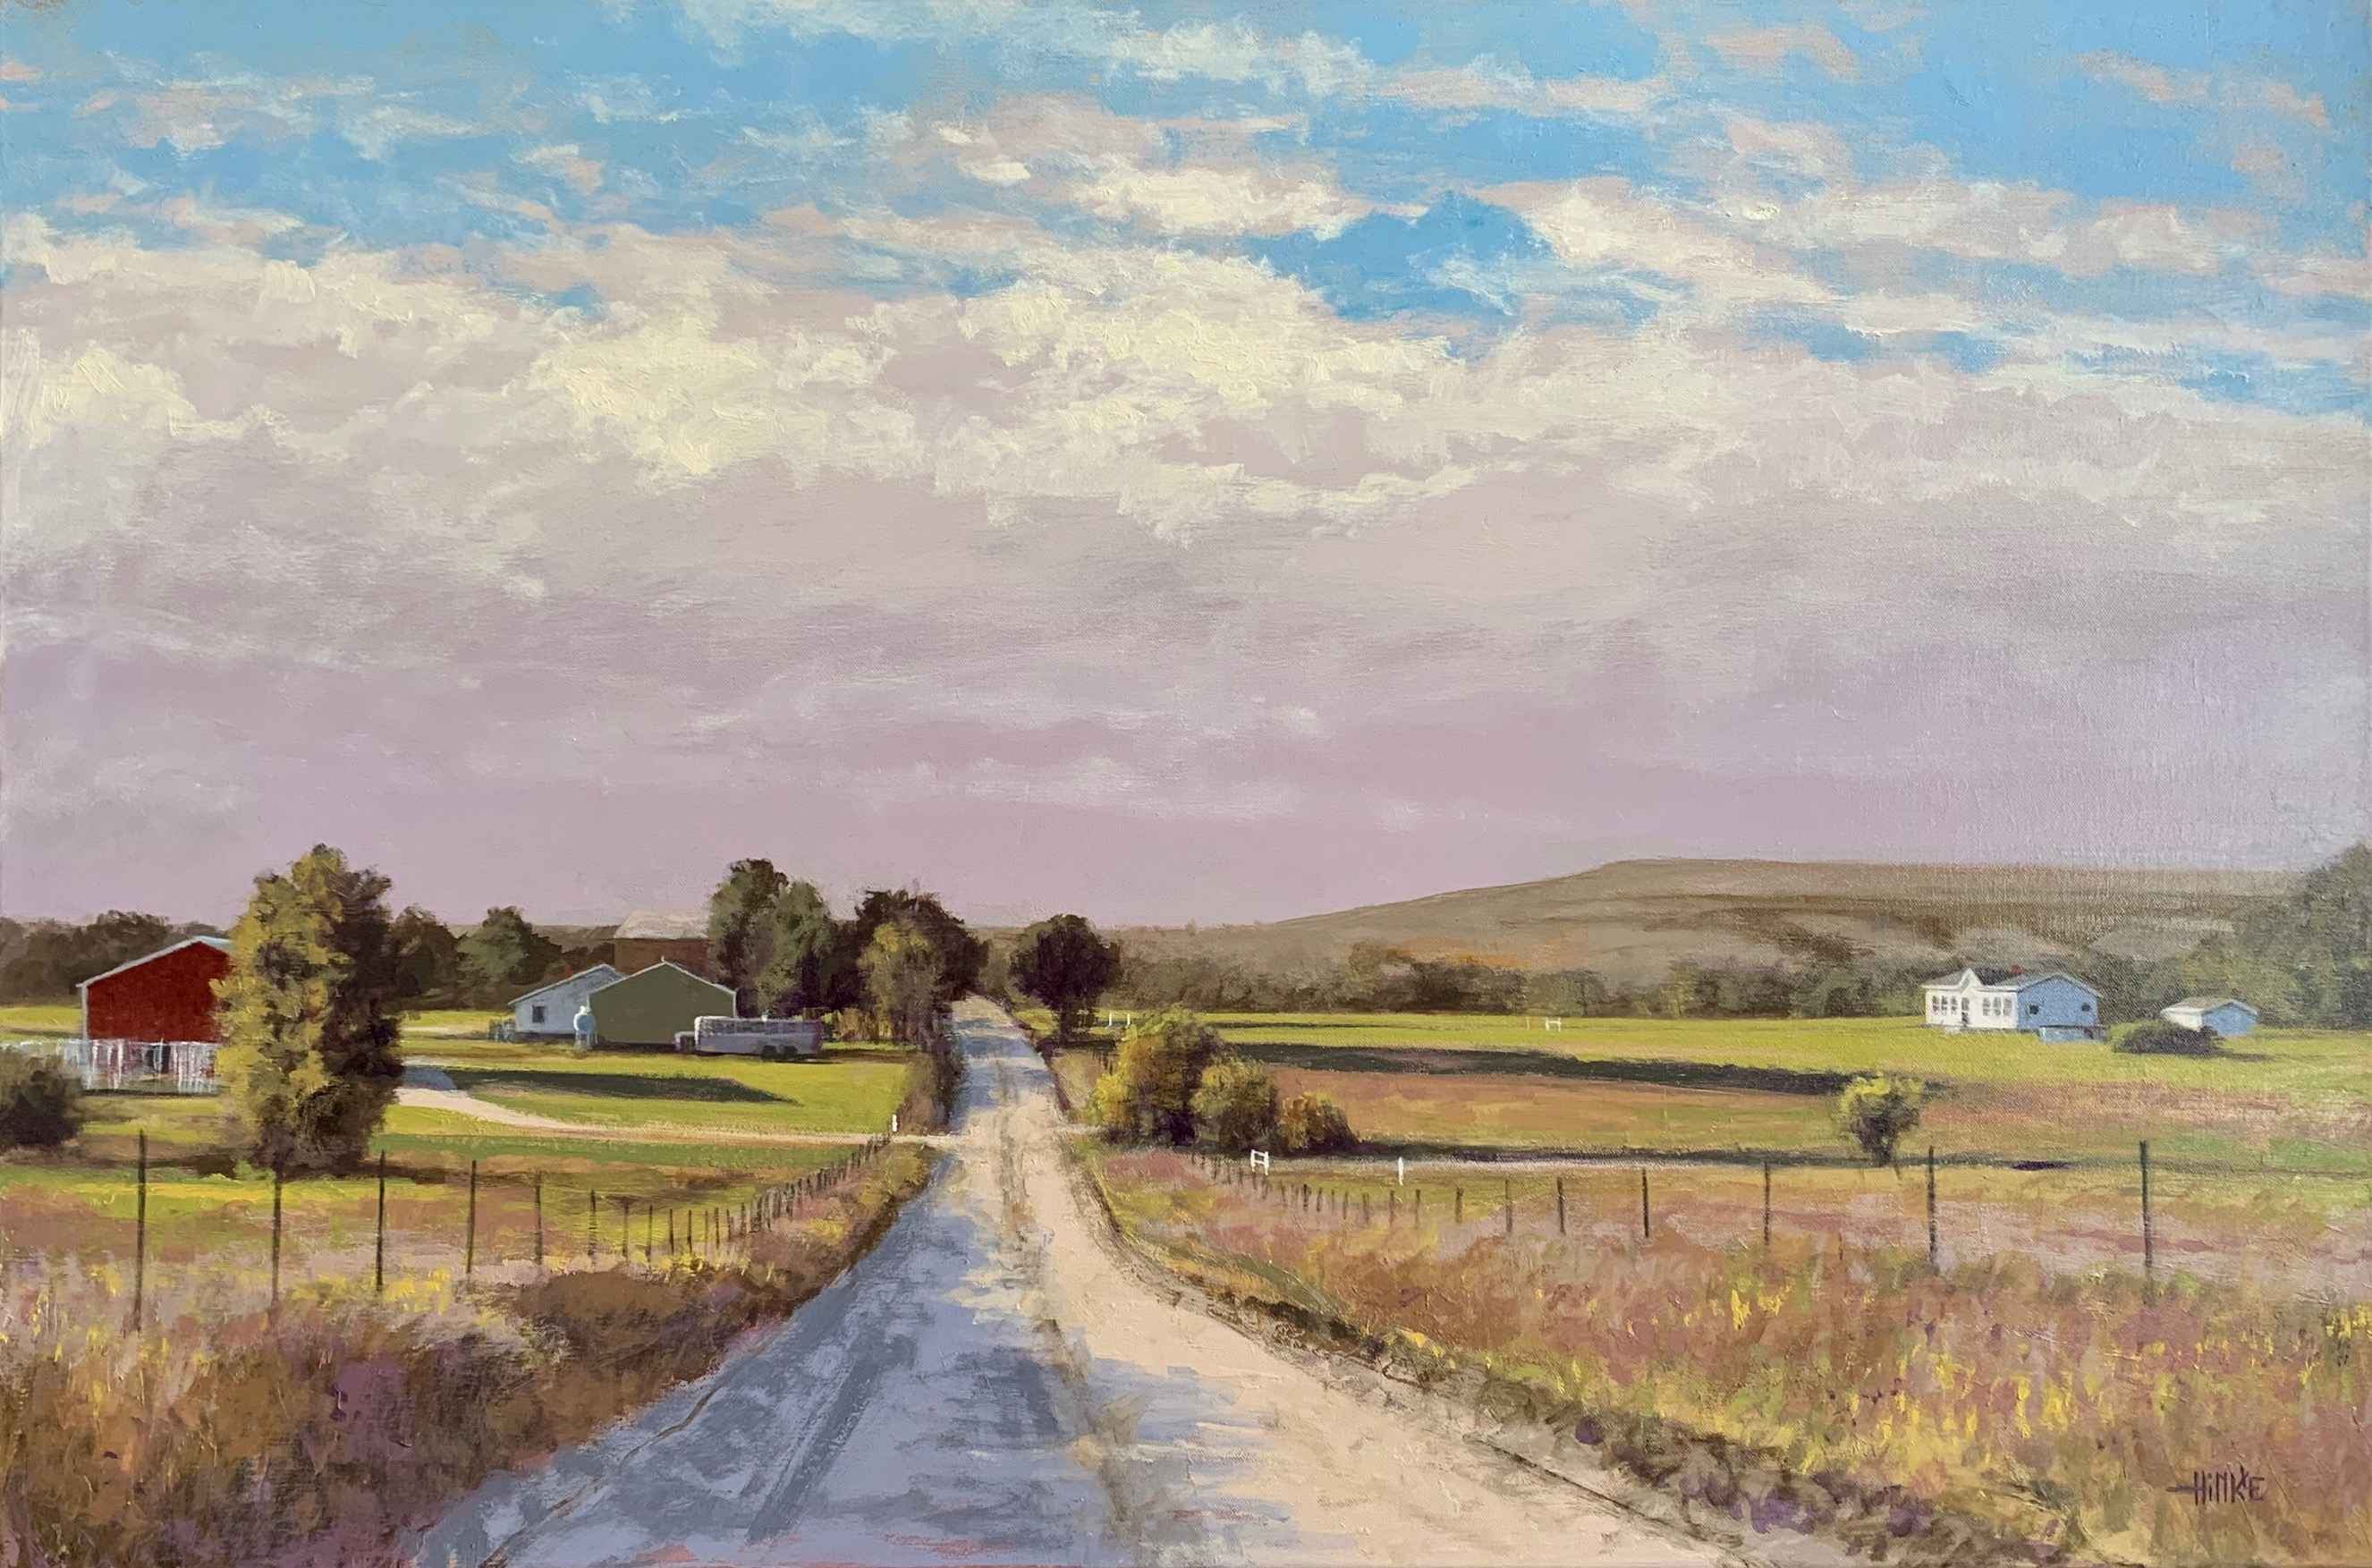 Butler Co. Rd. # 1 by  Brian Hinkle - Masterpiece Online